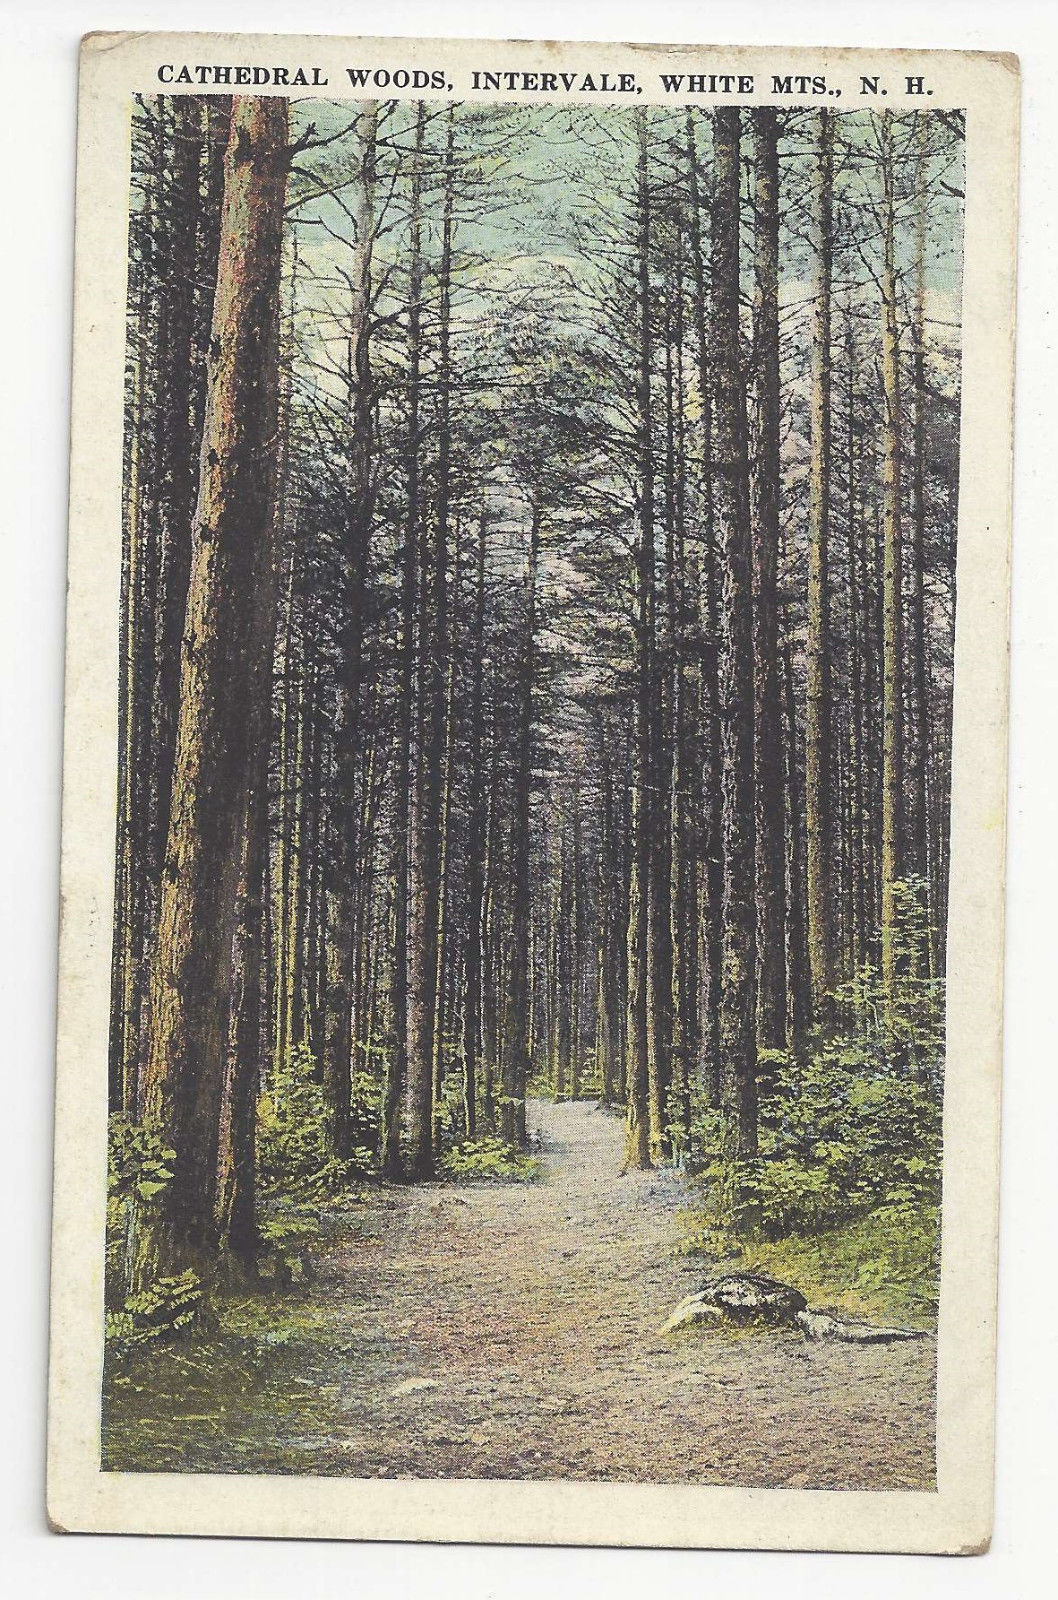 NH Intervale White Mountains Cathedral Woods Vtg Postcard